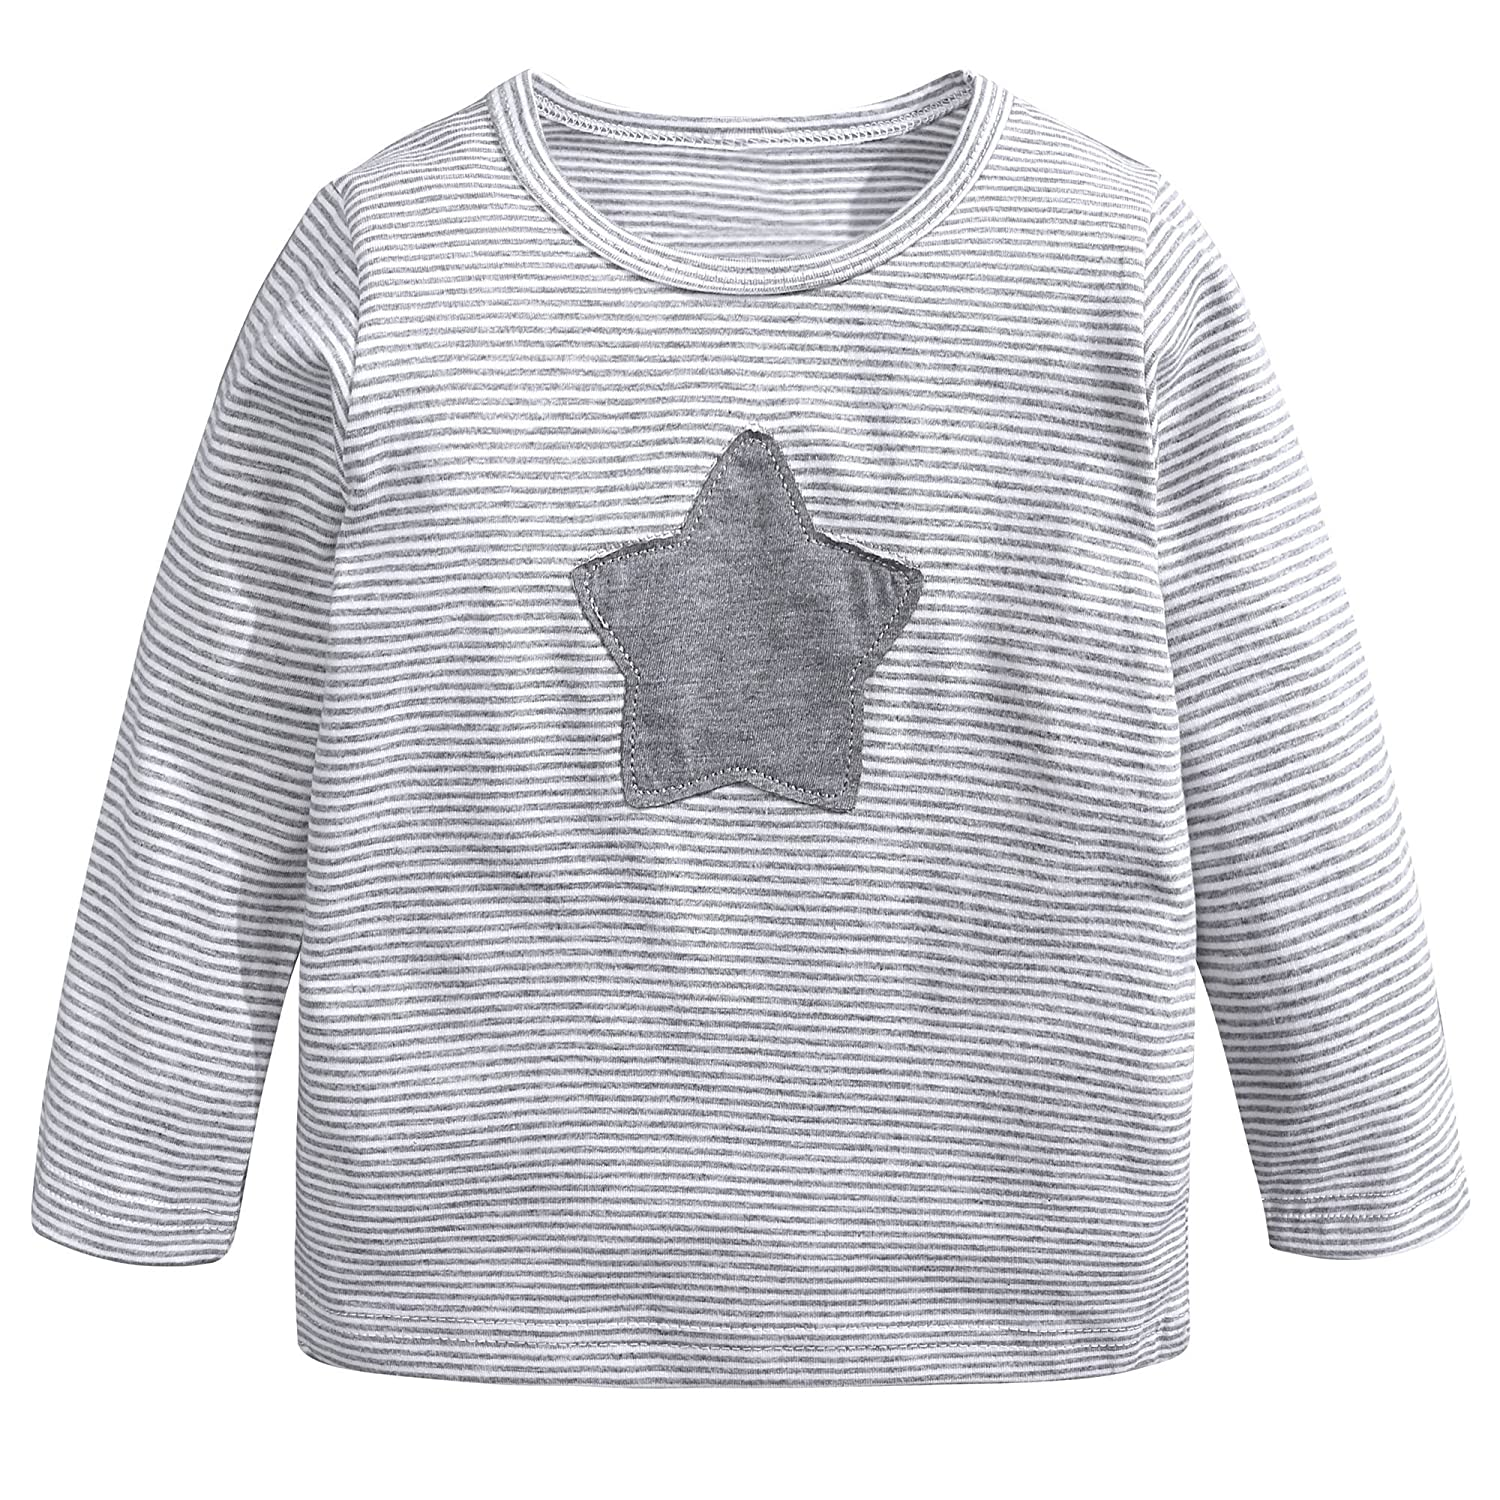 Mary ye Kids Girls Boys Star Striped Long Sleeve Cotton T Shirts Toddler Crew Neck T-Shirts Children's Infants Tee